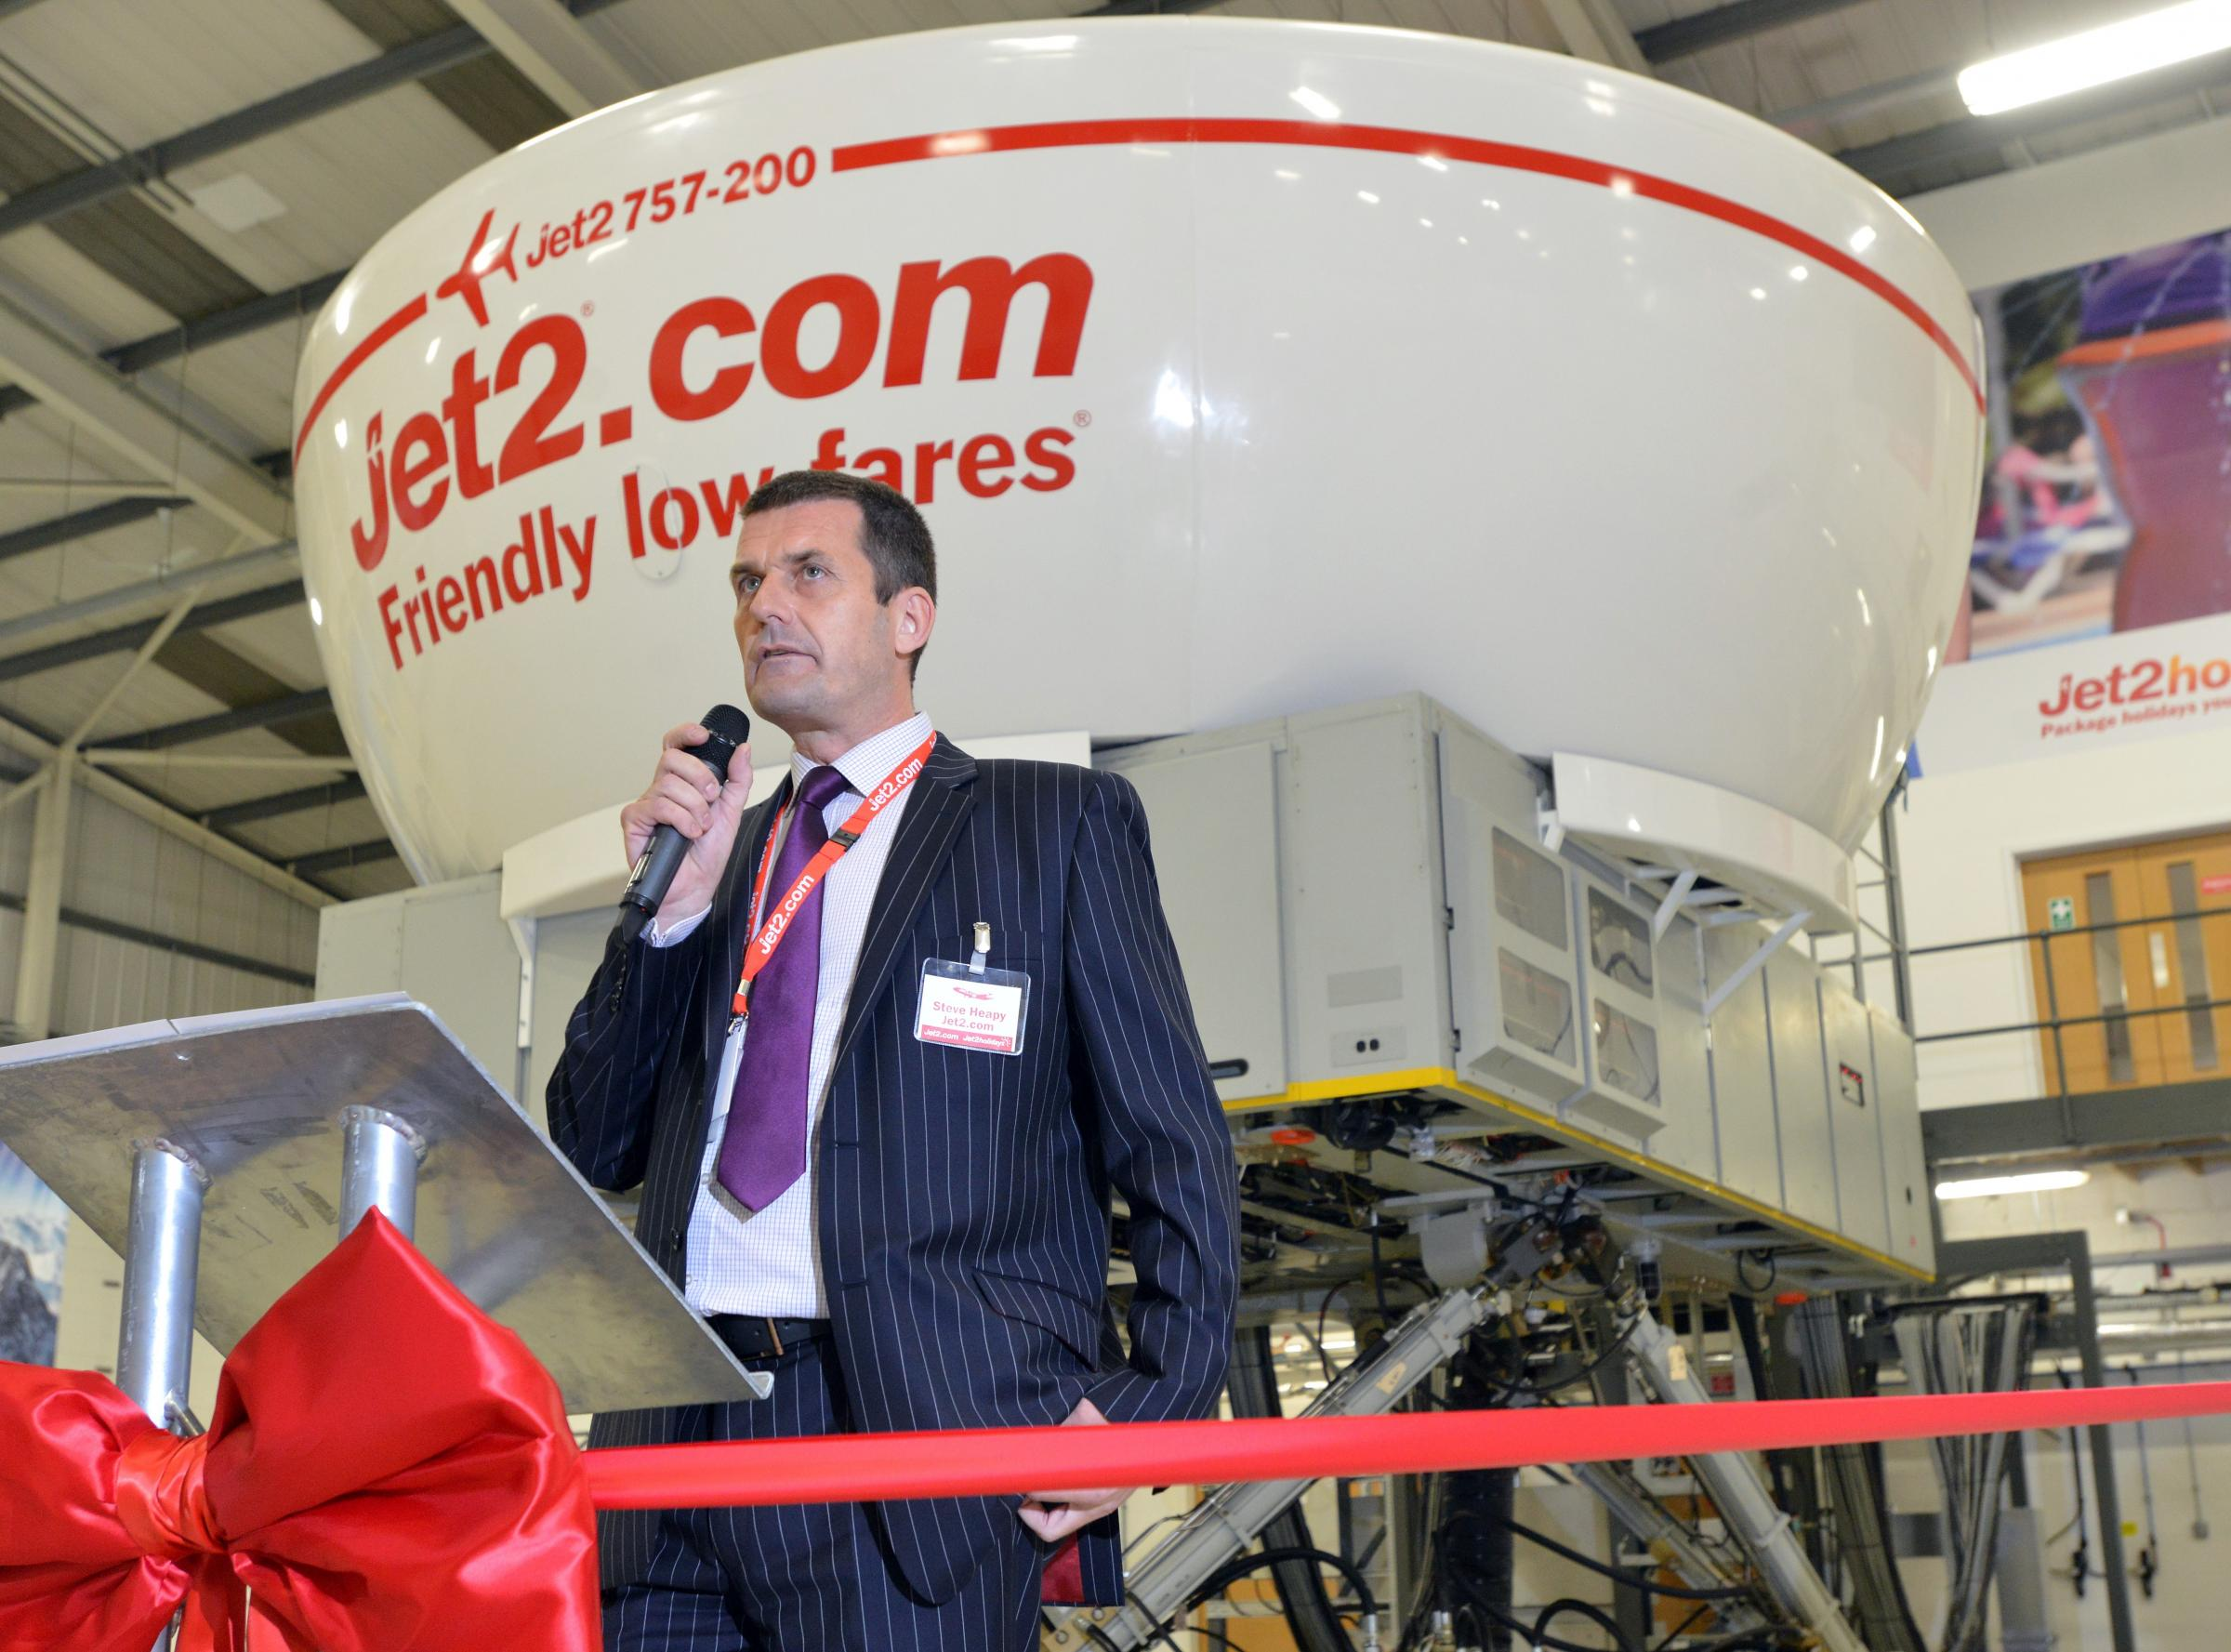 Steve Heapy, Jet2.com chief executive, has announced more than 300 jobs are coming to Leeds Bradford Airport